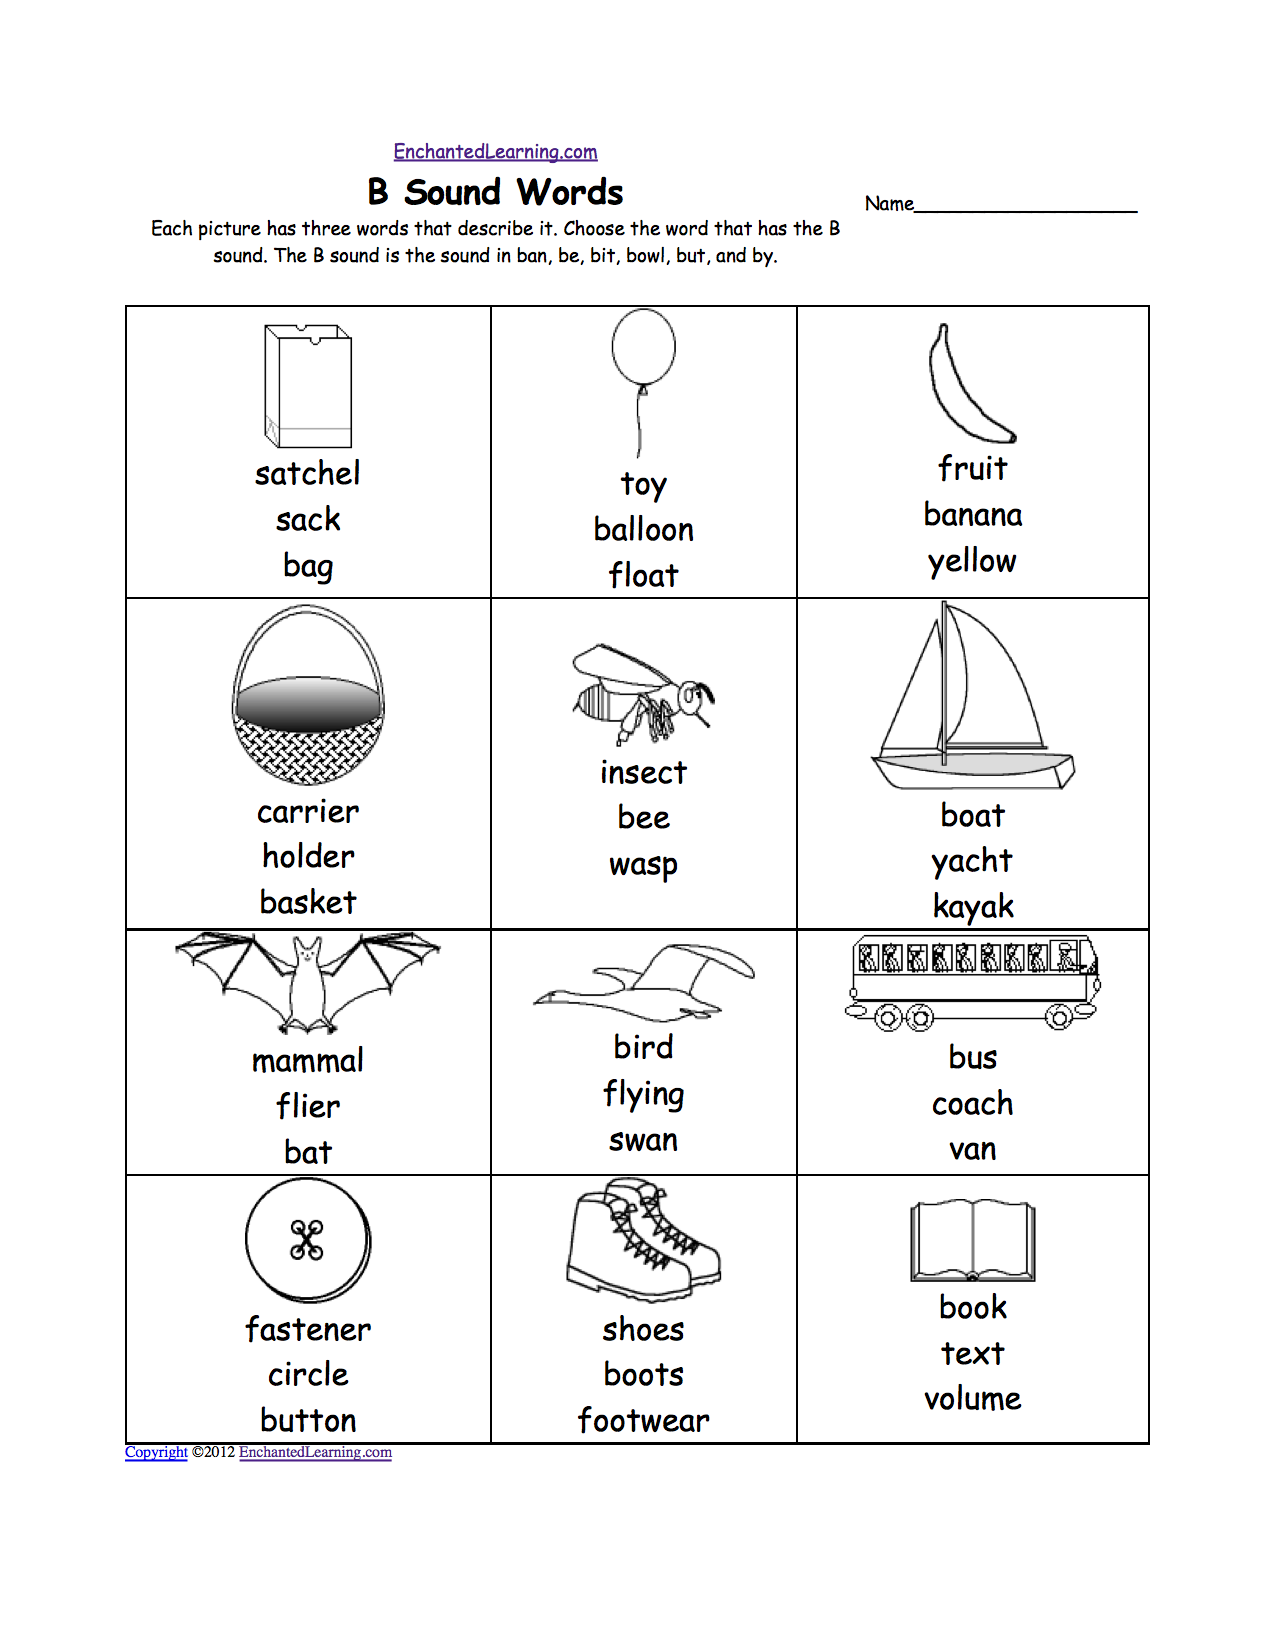 Weirdmailus  Stunning Phonics Worksheets Multiple Choice Worksheets To Print  With Outstanding Quotbquot Sound Phonics Worksheet Multiple Choice Each Picture Has Three Words That Describe It Choose The Word That Has A Quotbquot Sound The Quotbquot Sound Is The Sound  With Archaic Finding Density Worksheet Also Add Fractions With Like Denominators Worksheet In Addition Order Numbers Worksheet And Timelines For Kids Worksheets As Well As Read Worksheet Additionally Comprehension Worksheets Rd Grade From Enchantedlearningcom With Weirdmailus  Outstanding Phonics Worksheets Multiple Choice Worksheets To Print  With Archaic Quotbquot Sound Phonics Worksheet Multiple Choice Each Picture Has Three Words That Describe It Choose The Word That Has A Quotbquot Sound The Quotbquot Sound Is The Sound  And Stunning Finding Density Worksheet Also Add Fractions With Like Denominators Worksheet In Addition Order Numbers Worksheet From Enchantedlearningcom